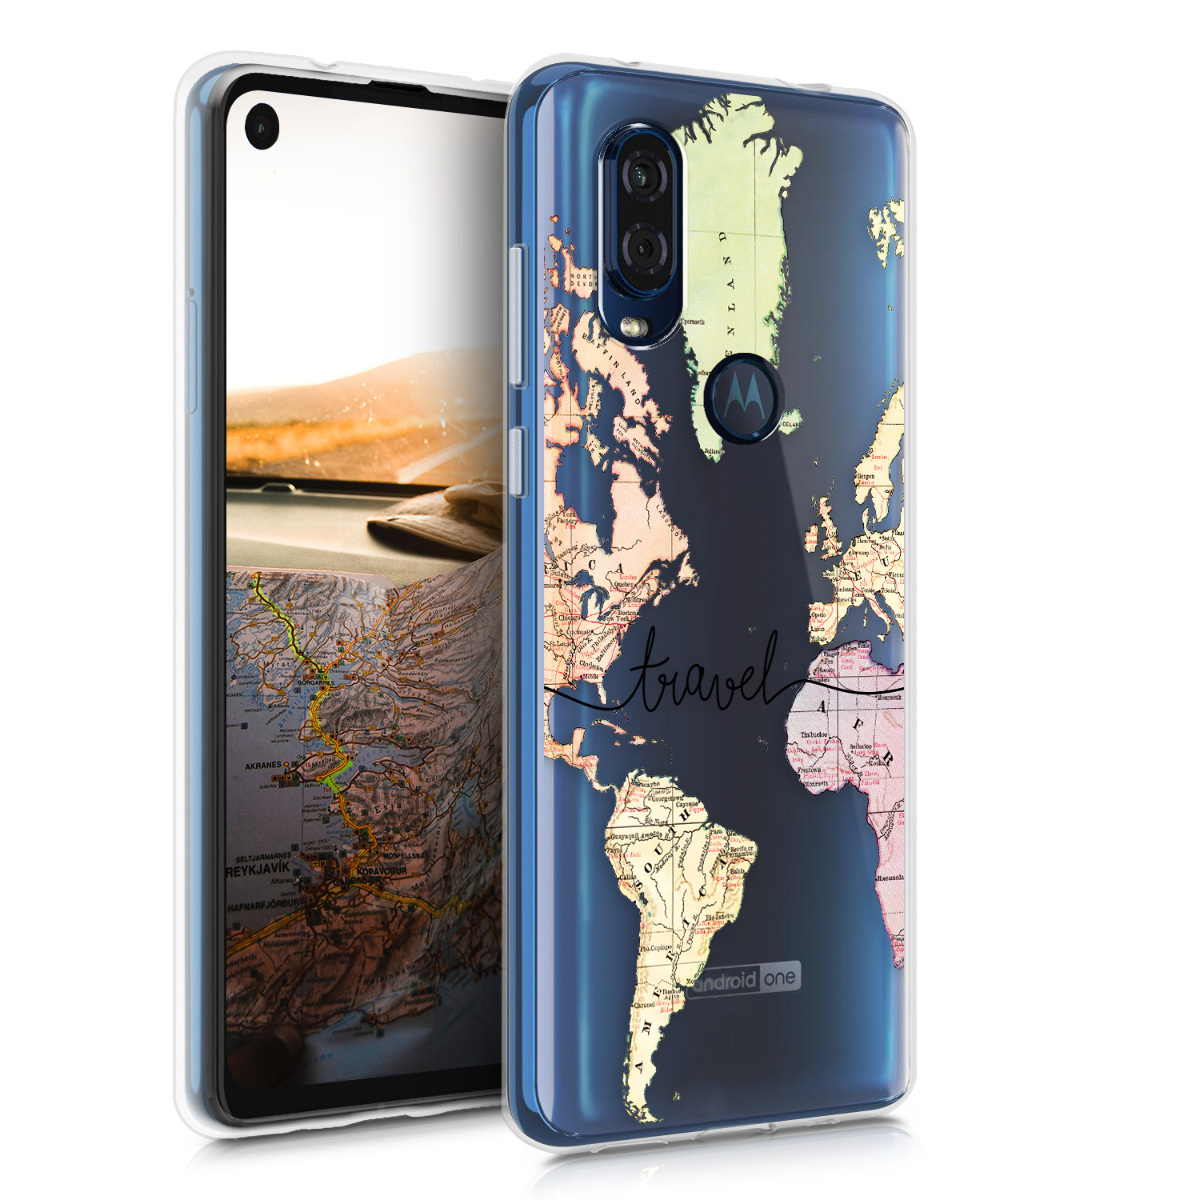 KW Θήκη Σιλικόνης Motorola One Vision - Travel Black - Multicolor / Transparent (48845.04)